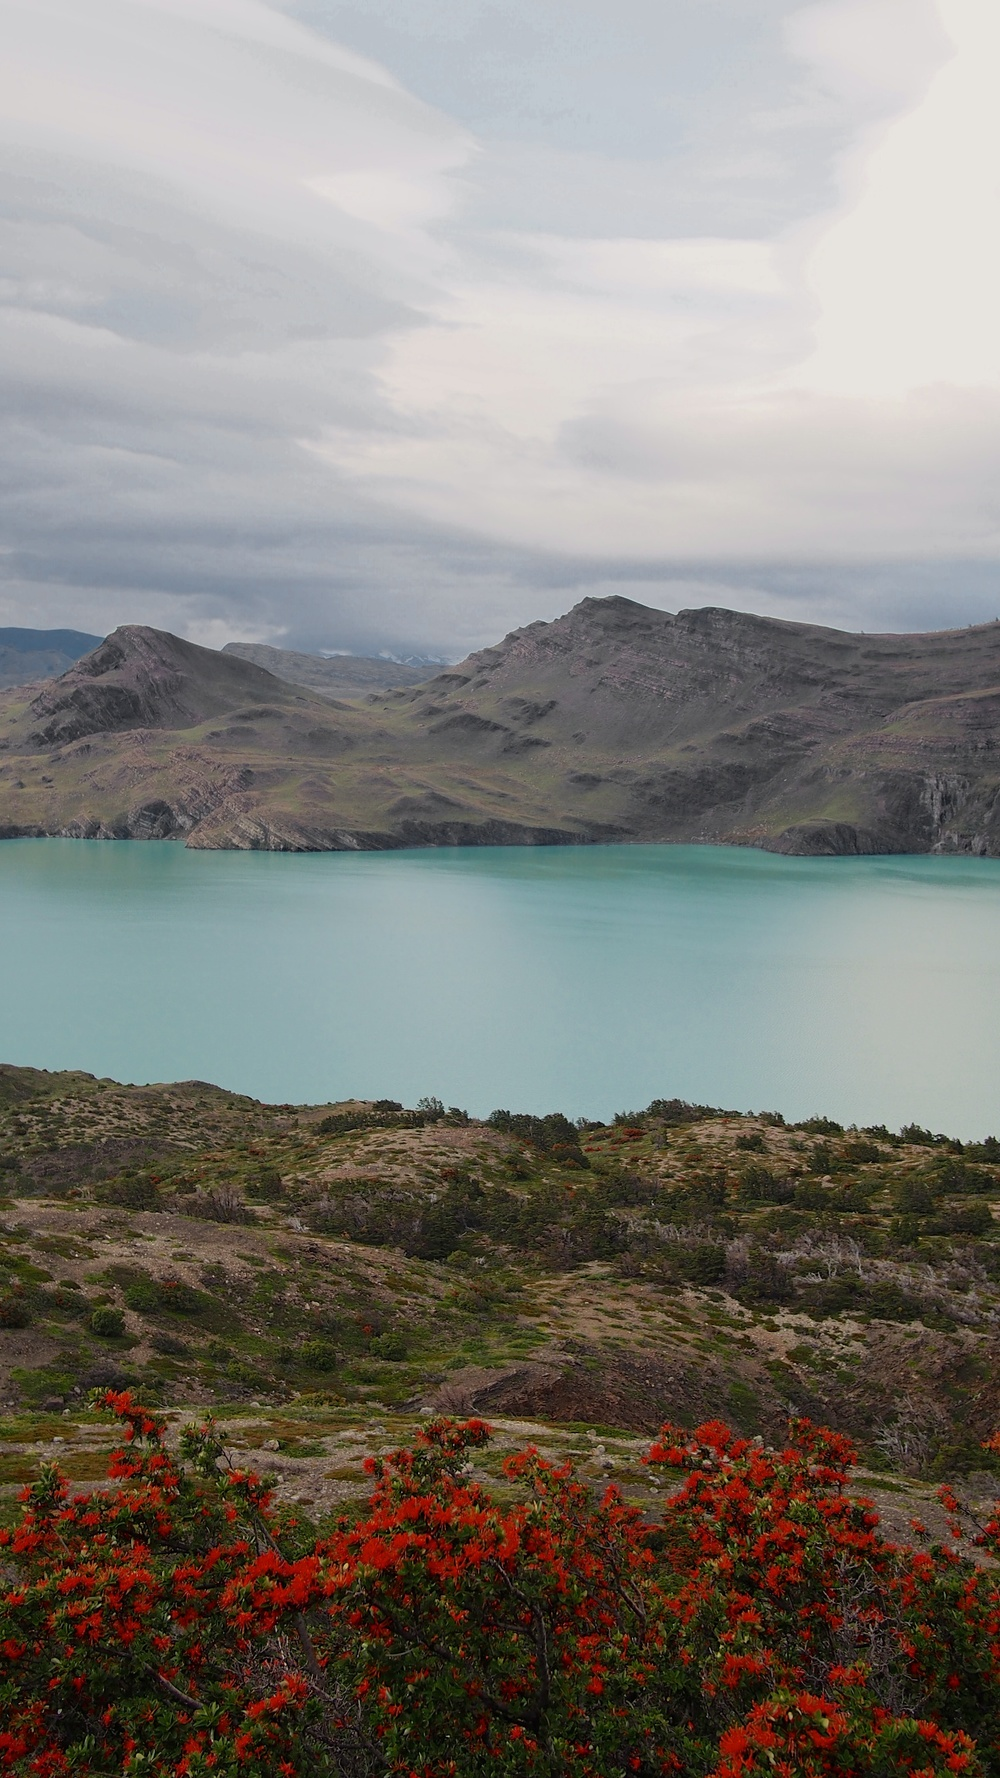 Even under cloudy weather, the colors of Torres del Paine standout beautifully